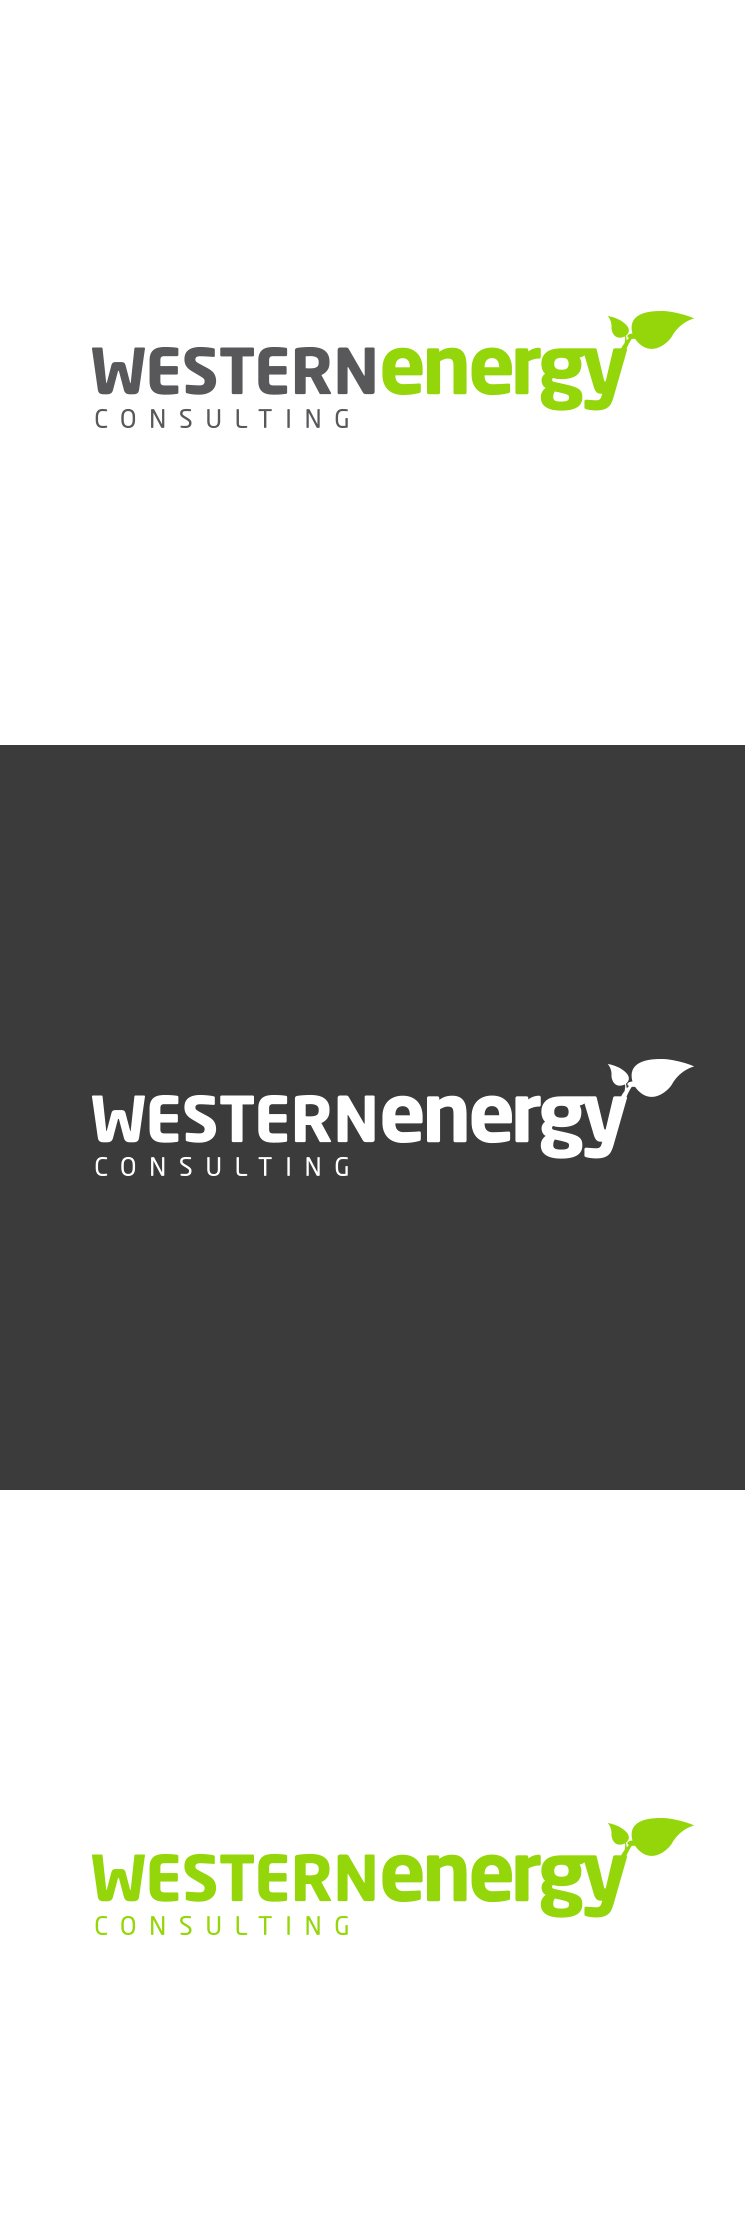 Western Energy Consulting